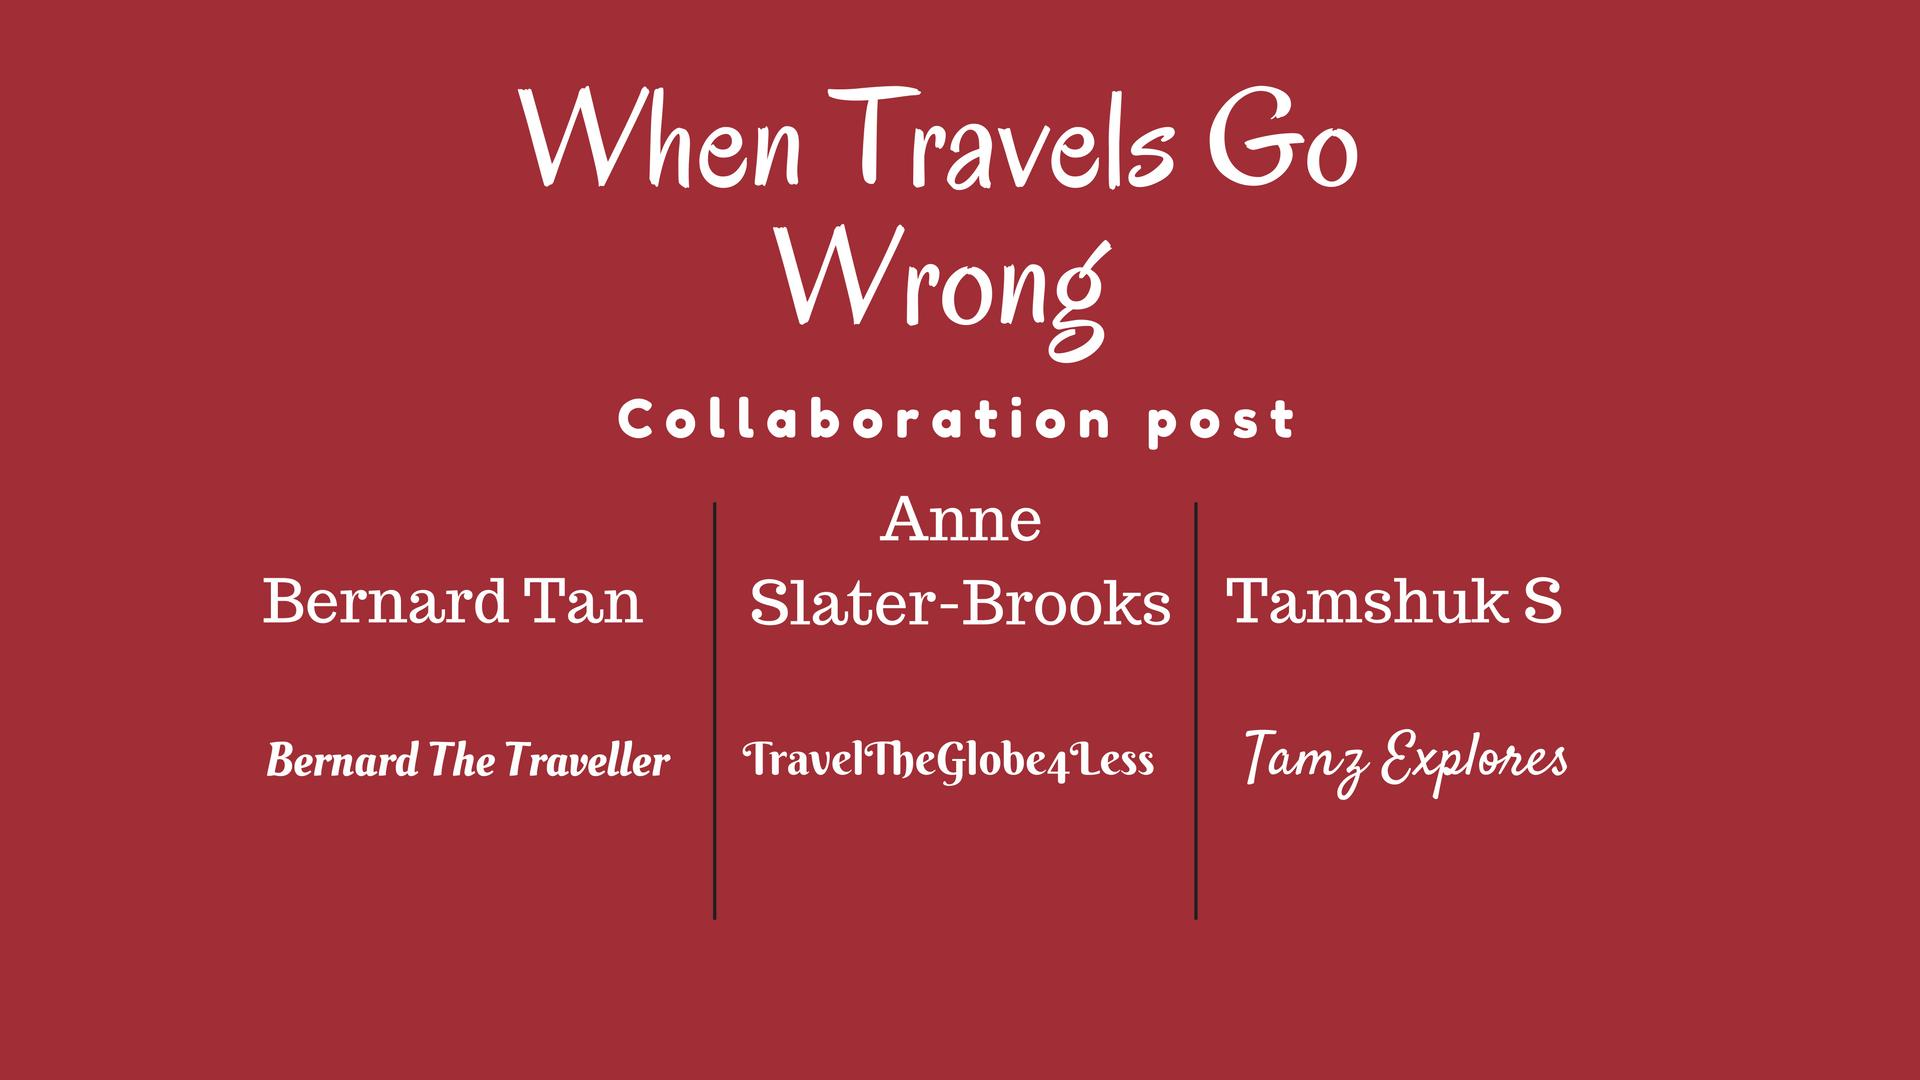 when-travels-go-wrong